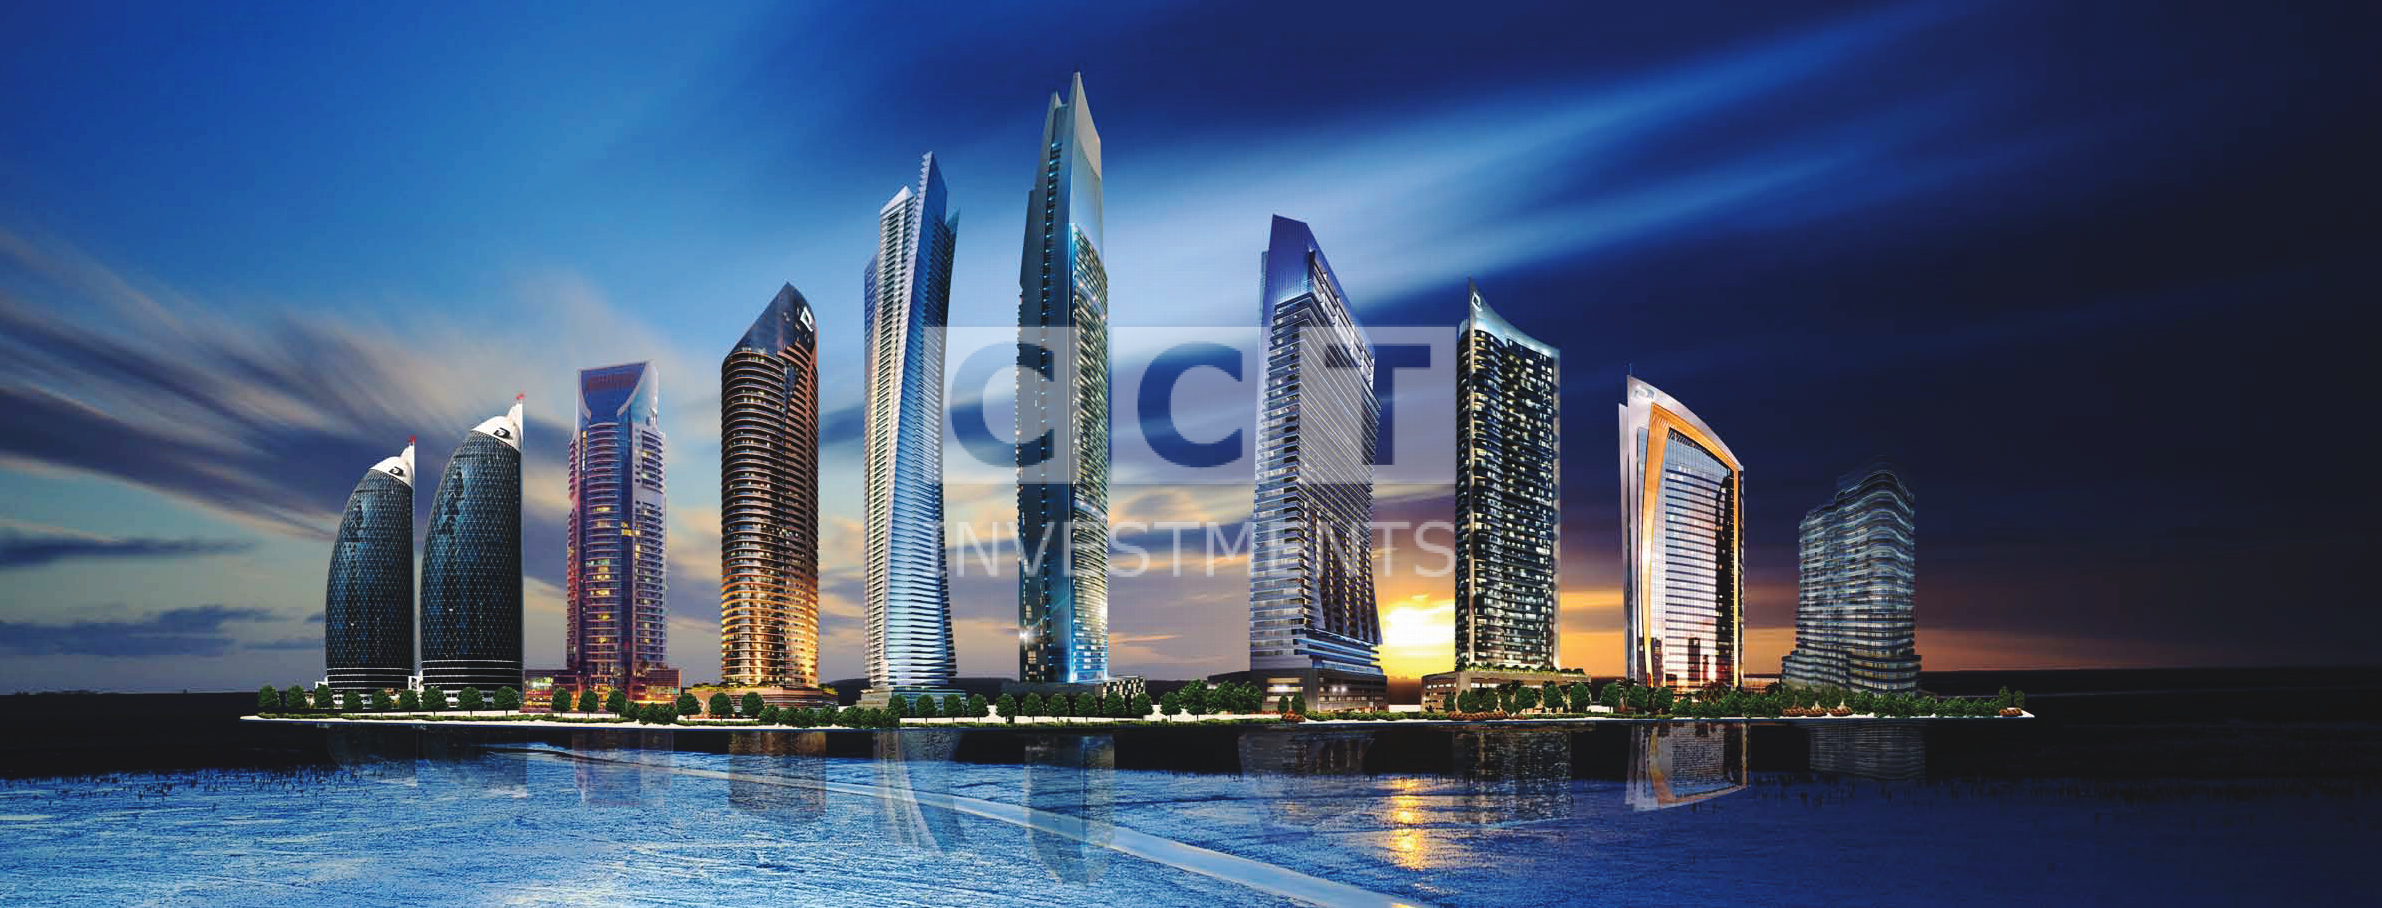 New Agreement With Damac Properties Cct Investments Math Wallpaper Golden Find Free HD for Desktop [pastnedes.tk]